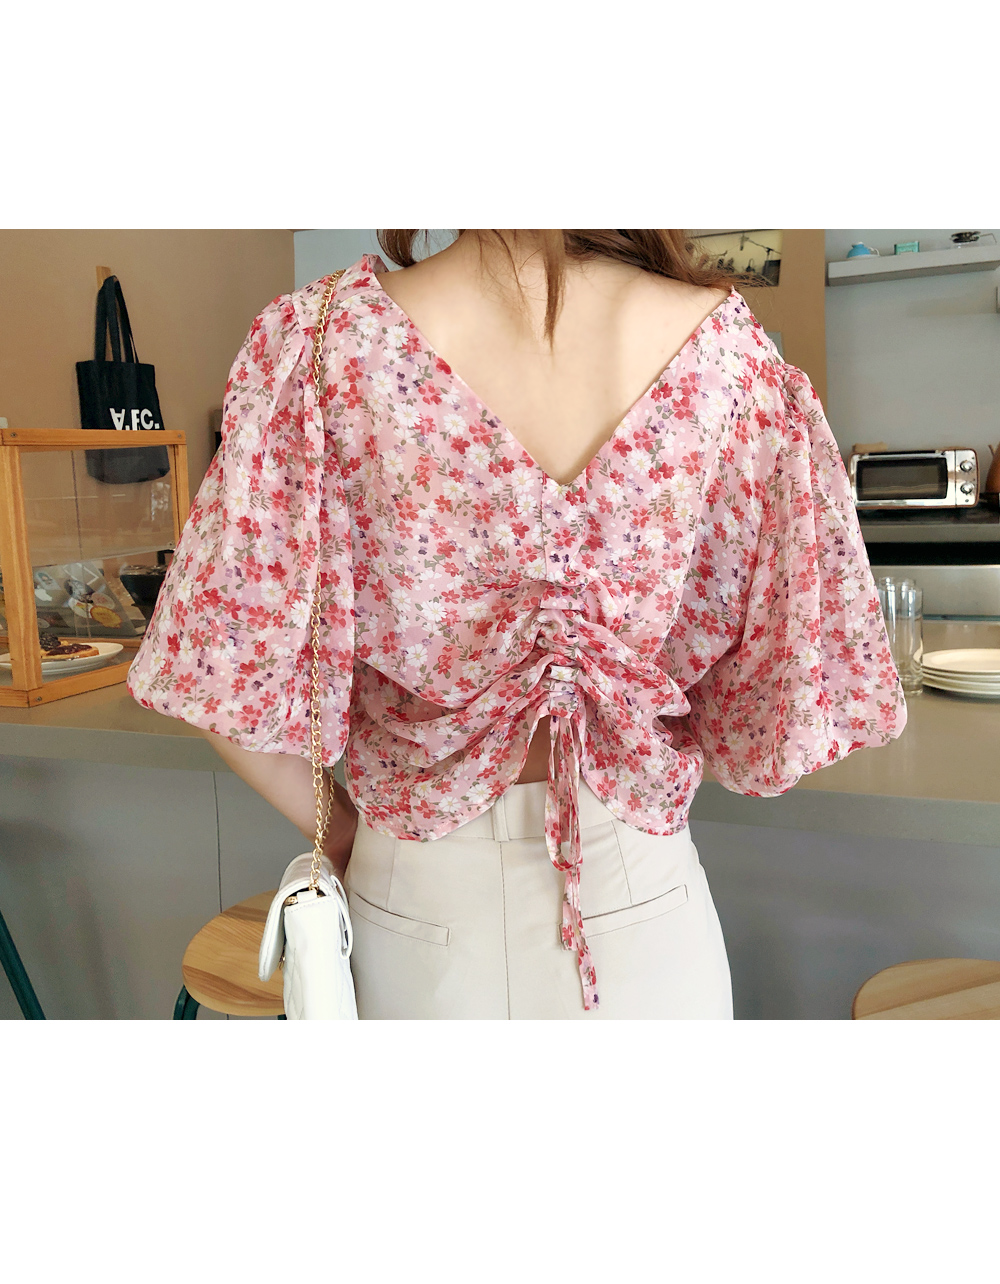 Try it on both sides Blouse